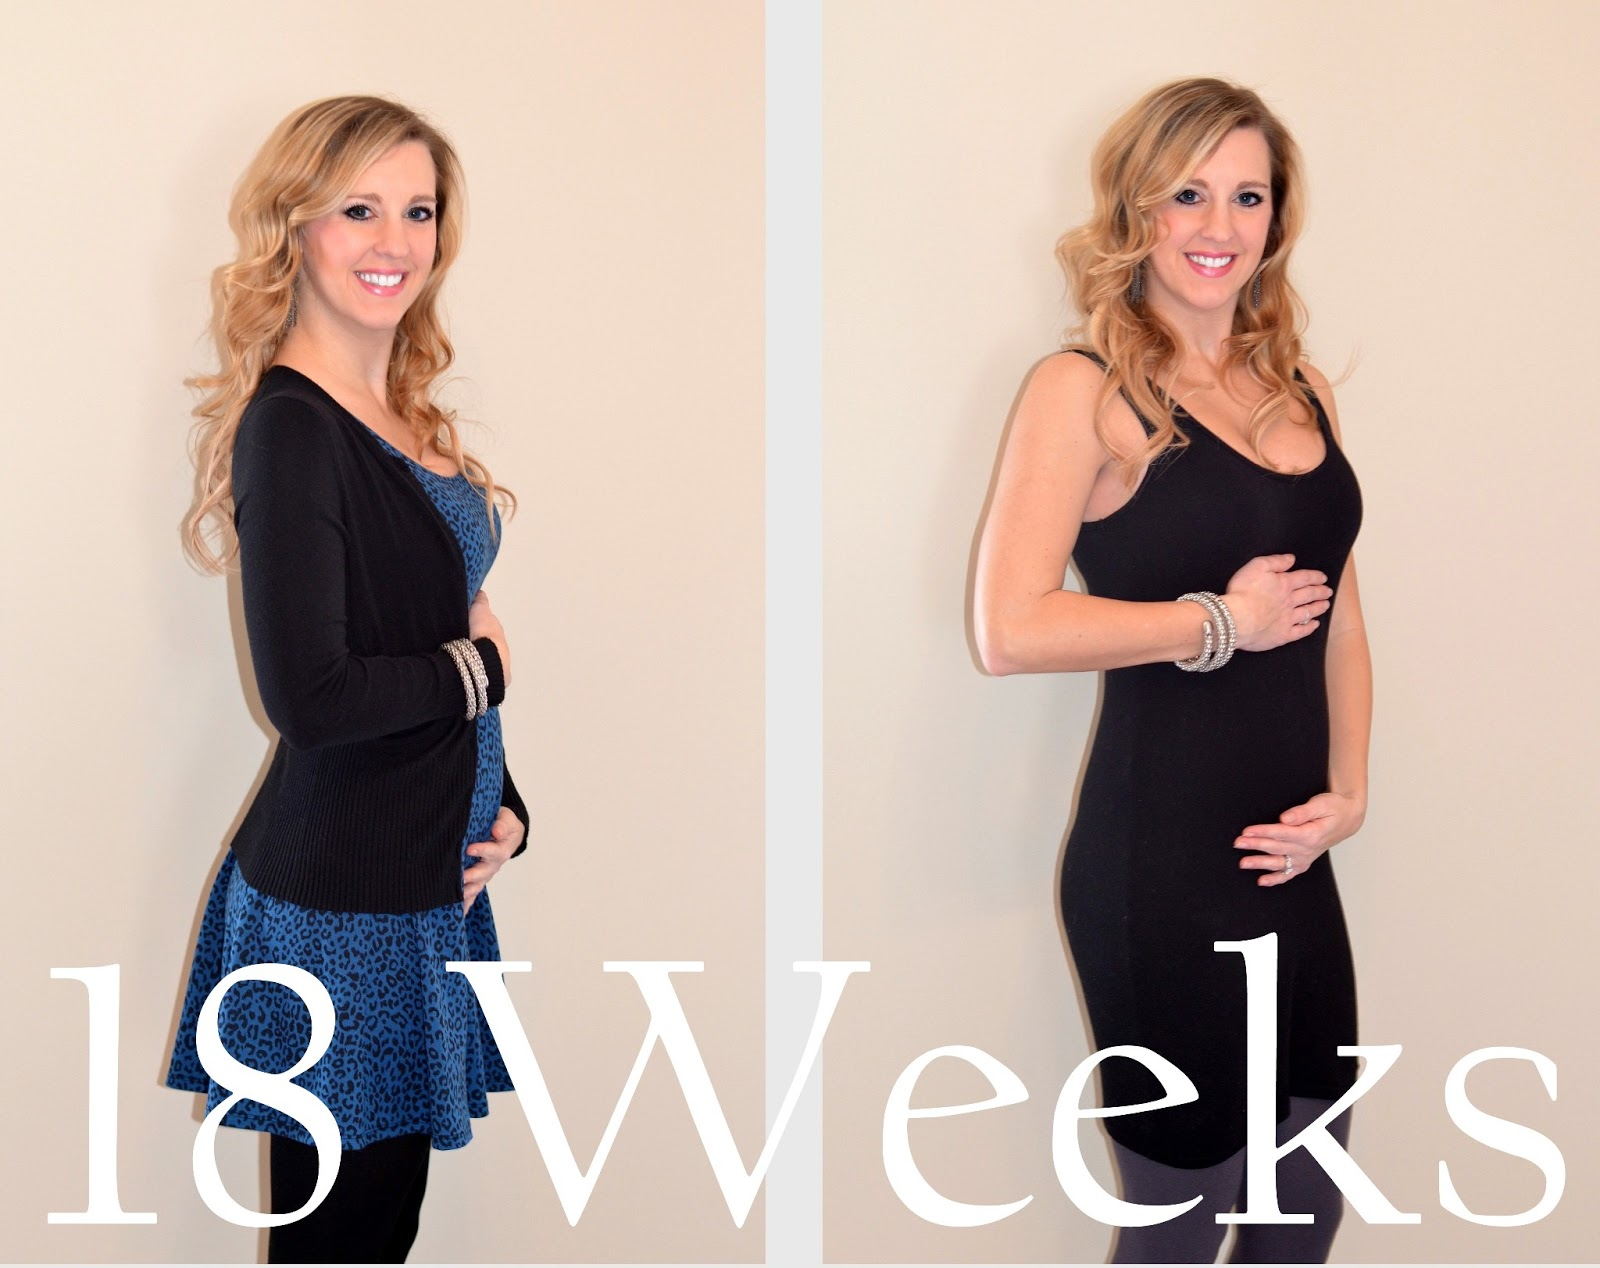 18 weeks pregnant - baby bump picture